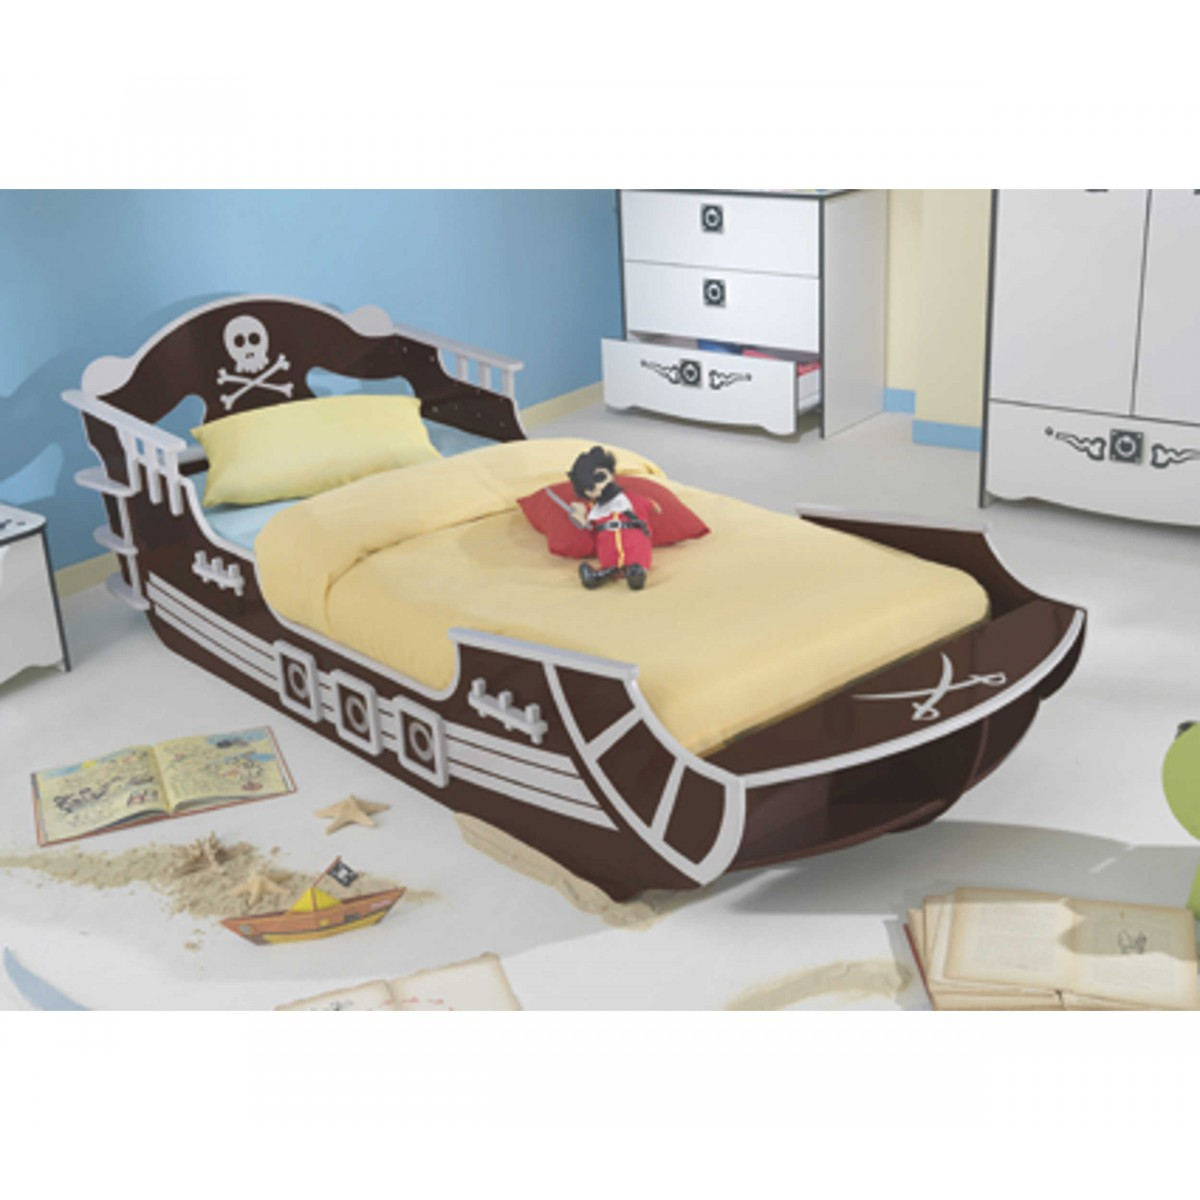 lit enfant bateau pirate hoze home. Black Bedroom Furniture Sets. Home Design Ideas